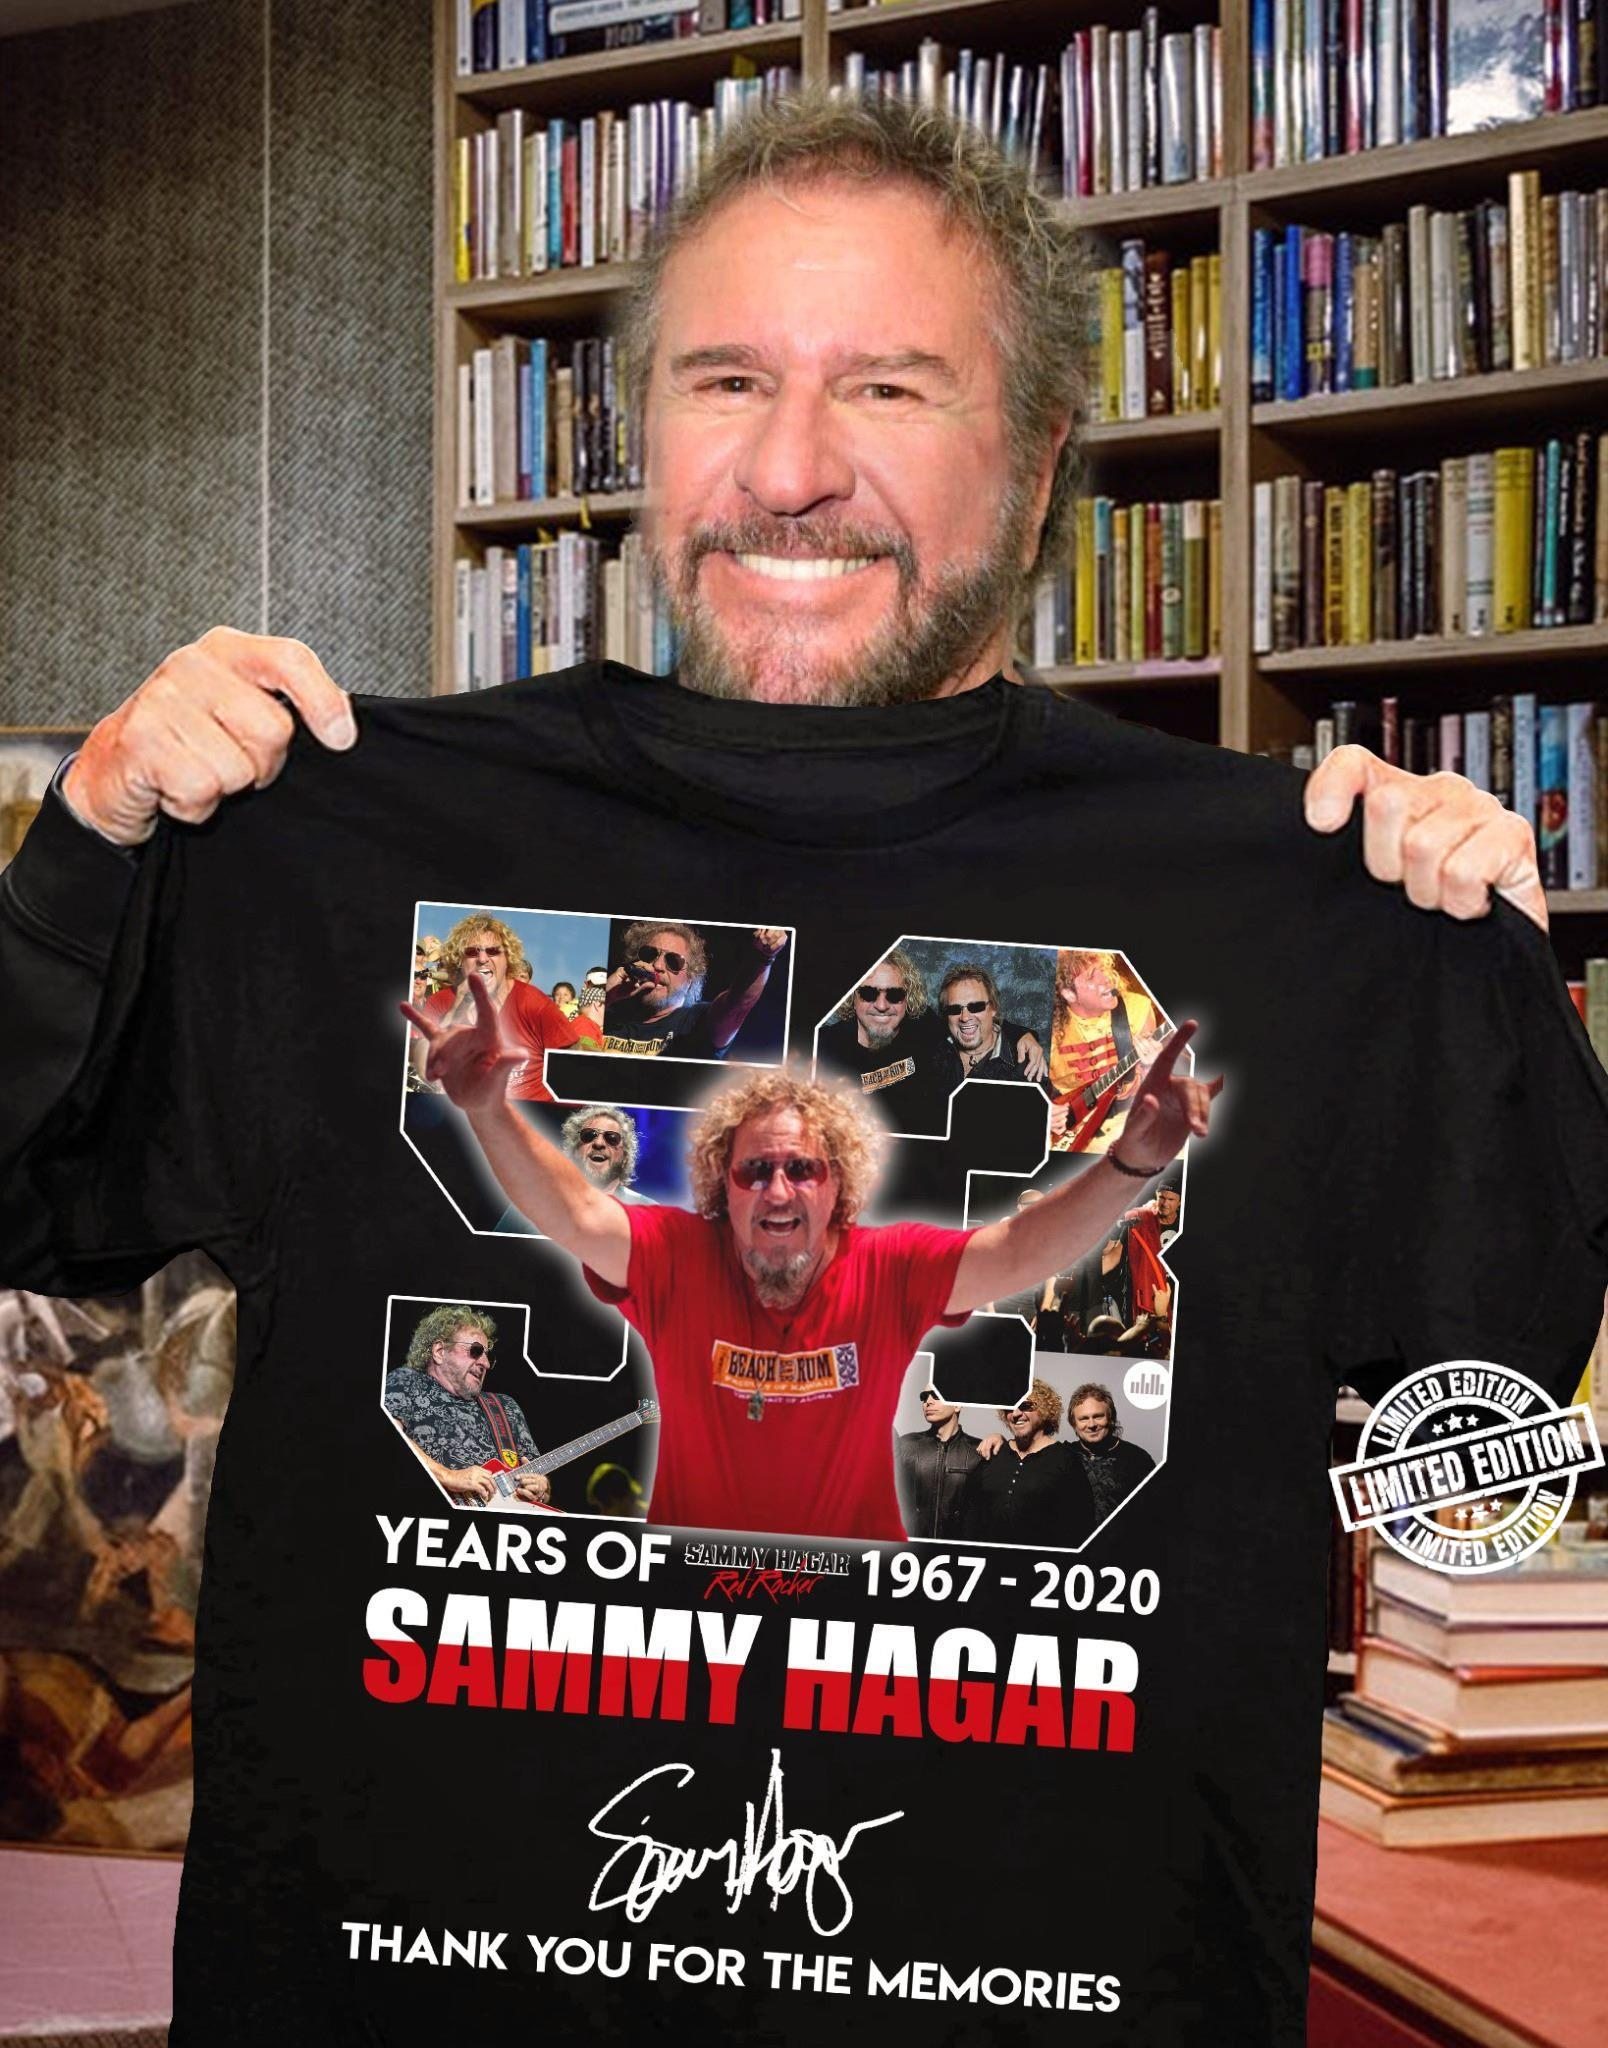 Years Of 1967 2020 Sammy Hagar Thank You For The Memories Shirt